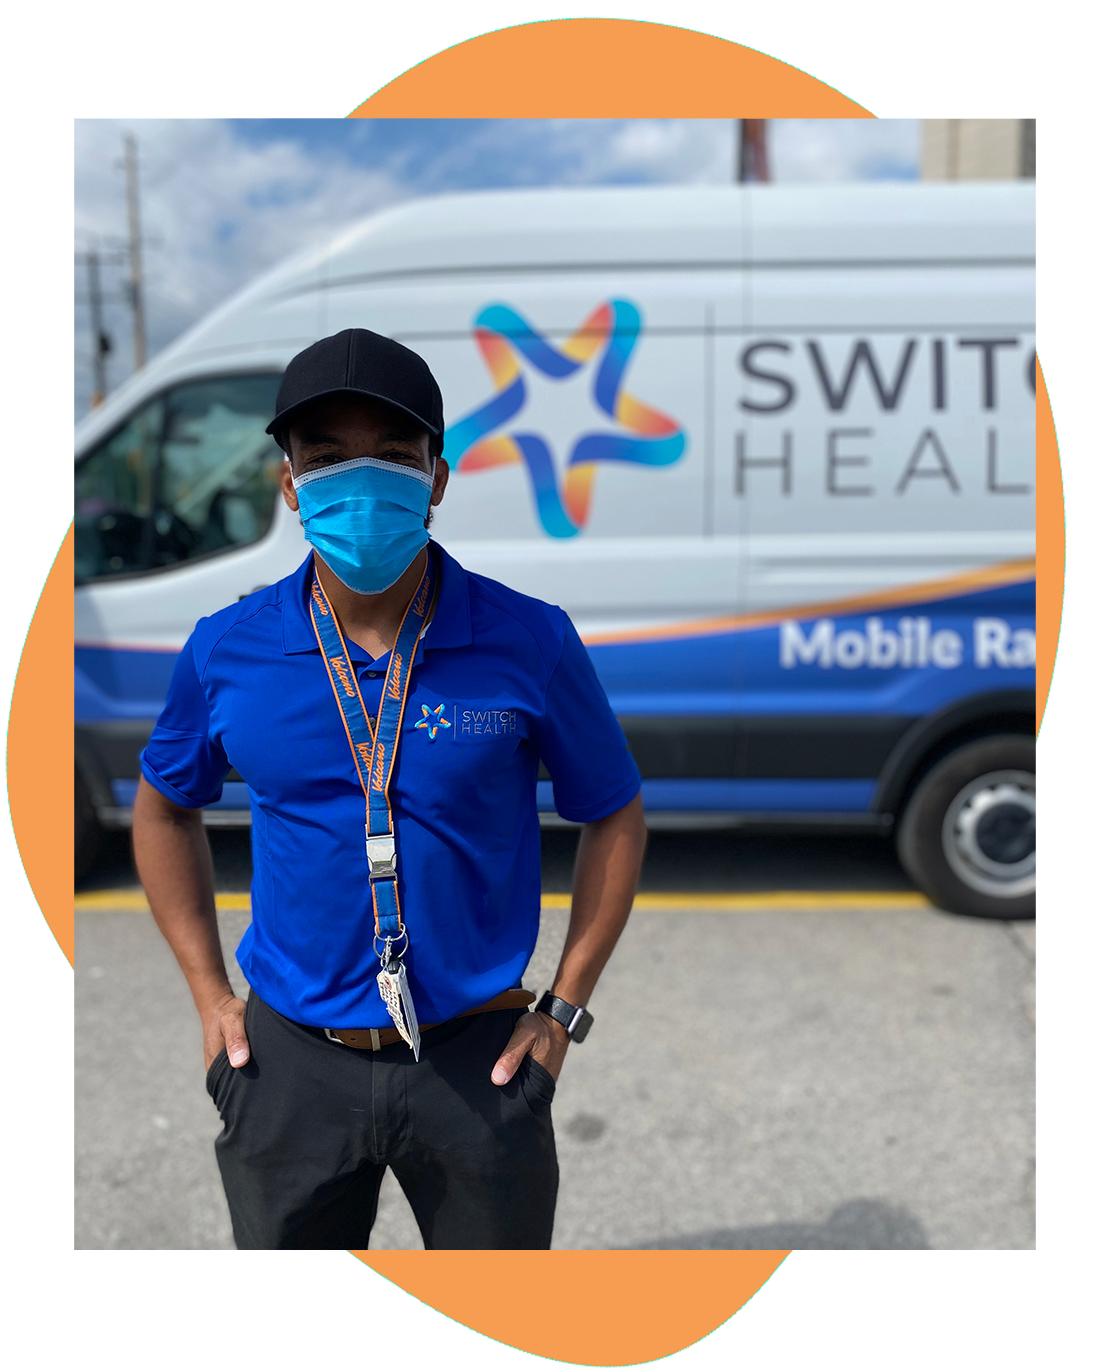 Switch Health Covid 19 Testing